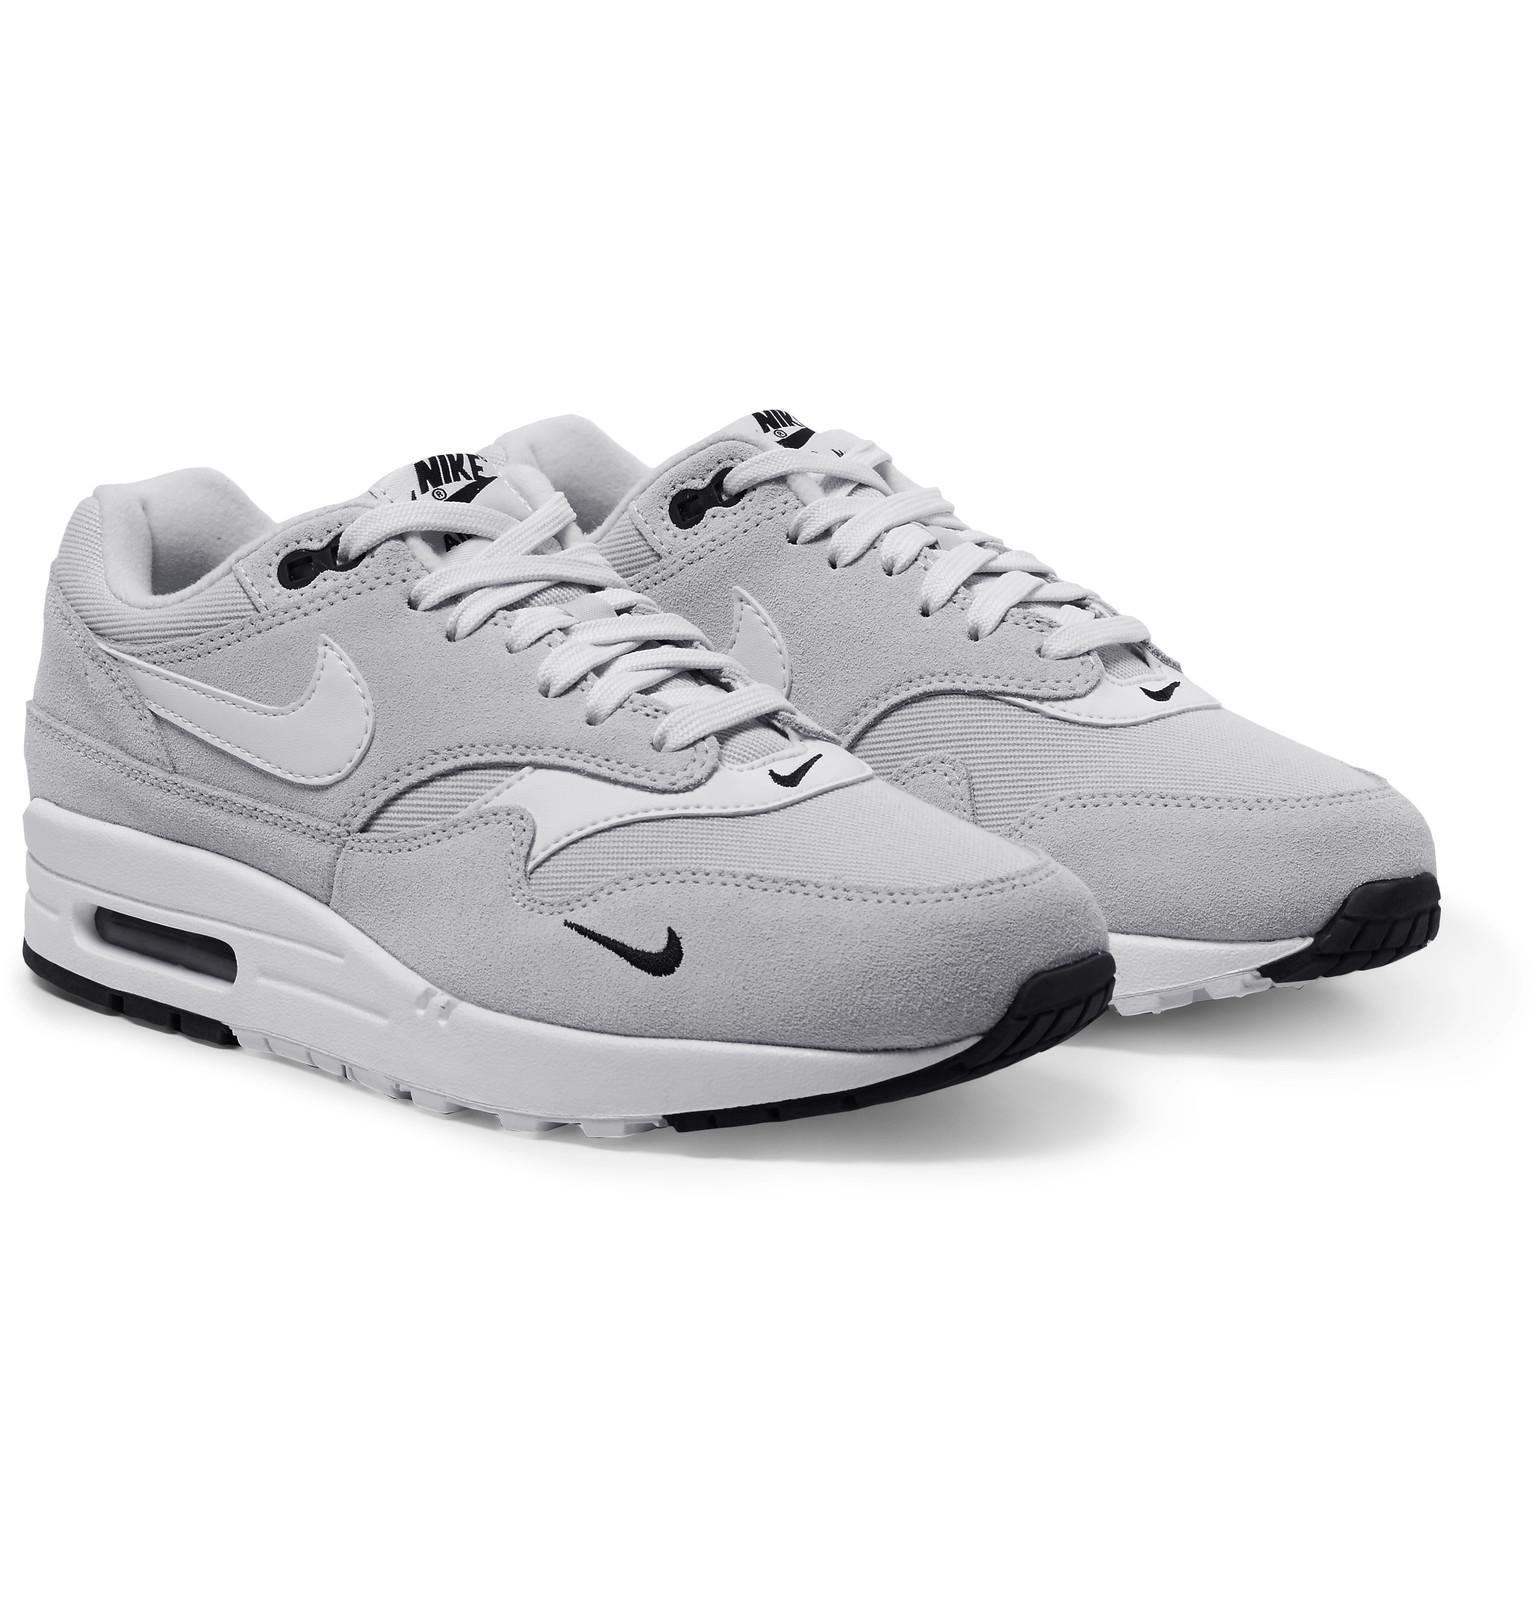 low priced b18cd a0467 Nike Air Max 1 Premium Leather-trimmed Suede And Mesh Sneakers in ...